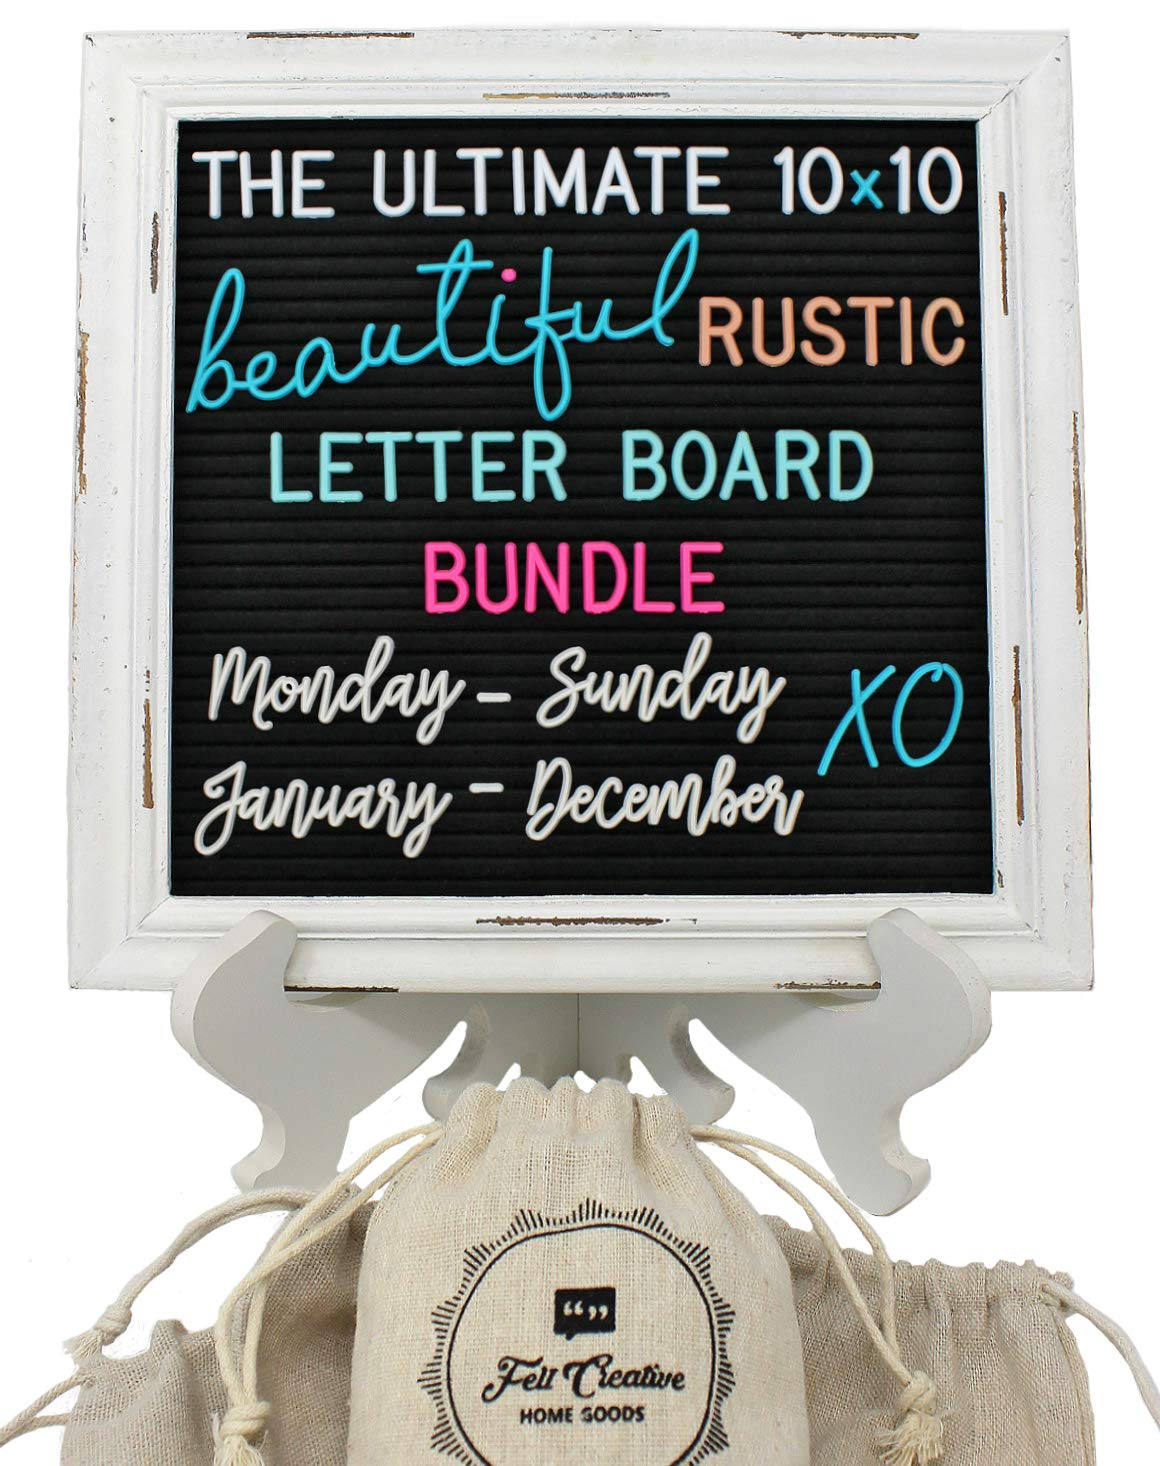 Rustic Felt Letter Board Ultimate Bundle Farmhouse Vintage White Wood Frame and Stand by Felt Creative Home Goods (Black, 10x10 Inches)